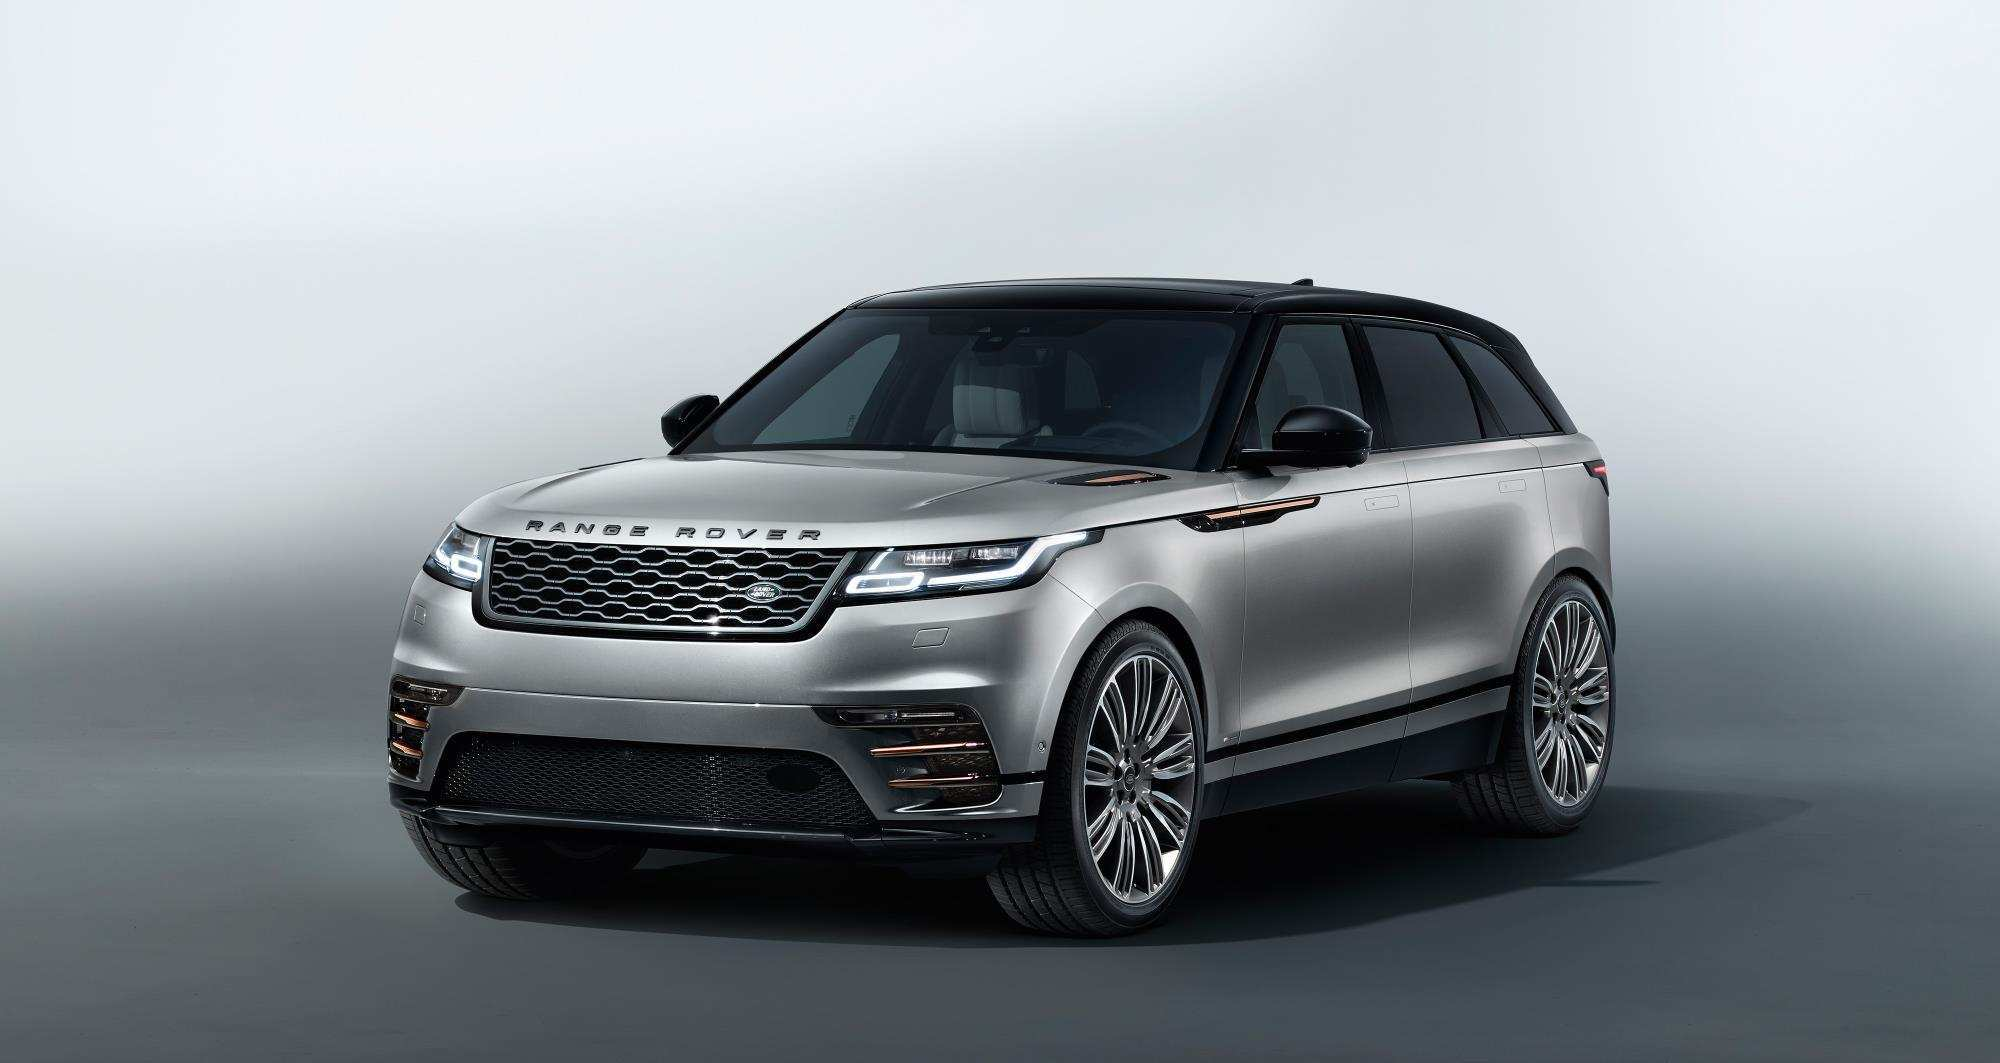 56 Concept of 2020 Land Rover Road Rover Spy Shoot by 2020 Land Rover Road Rover